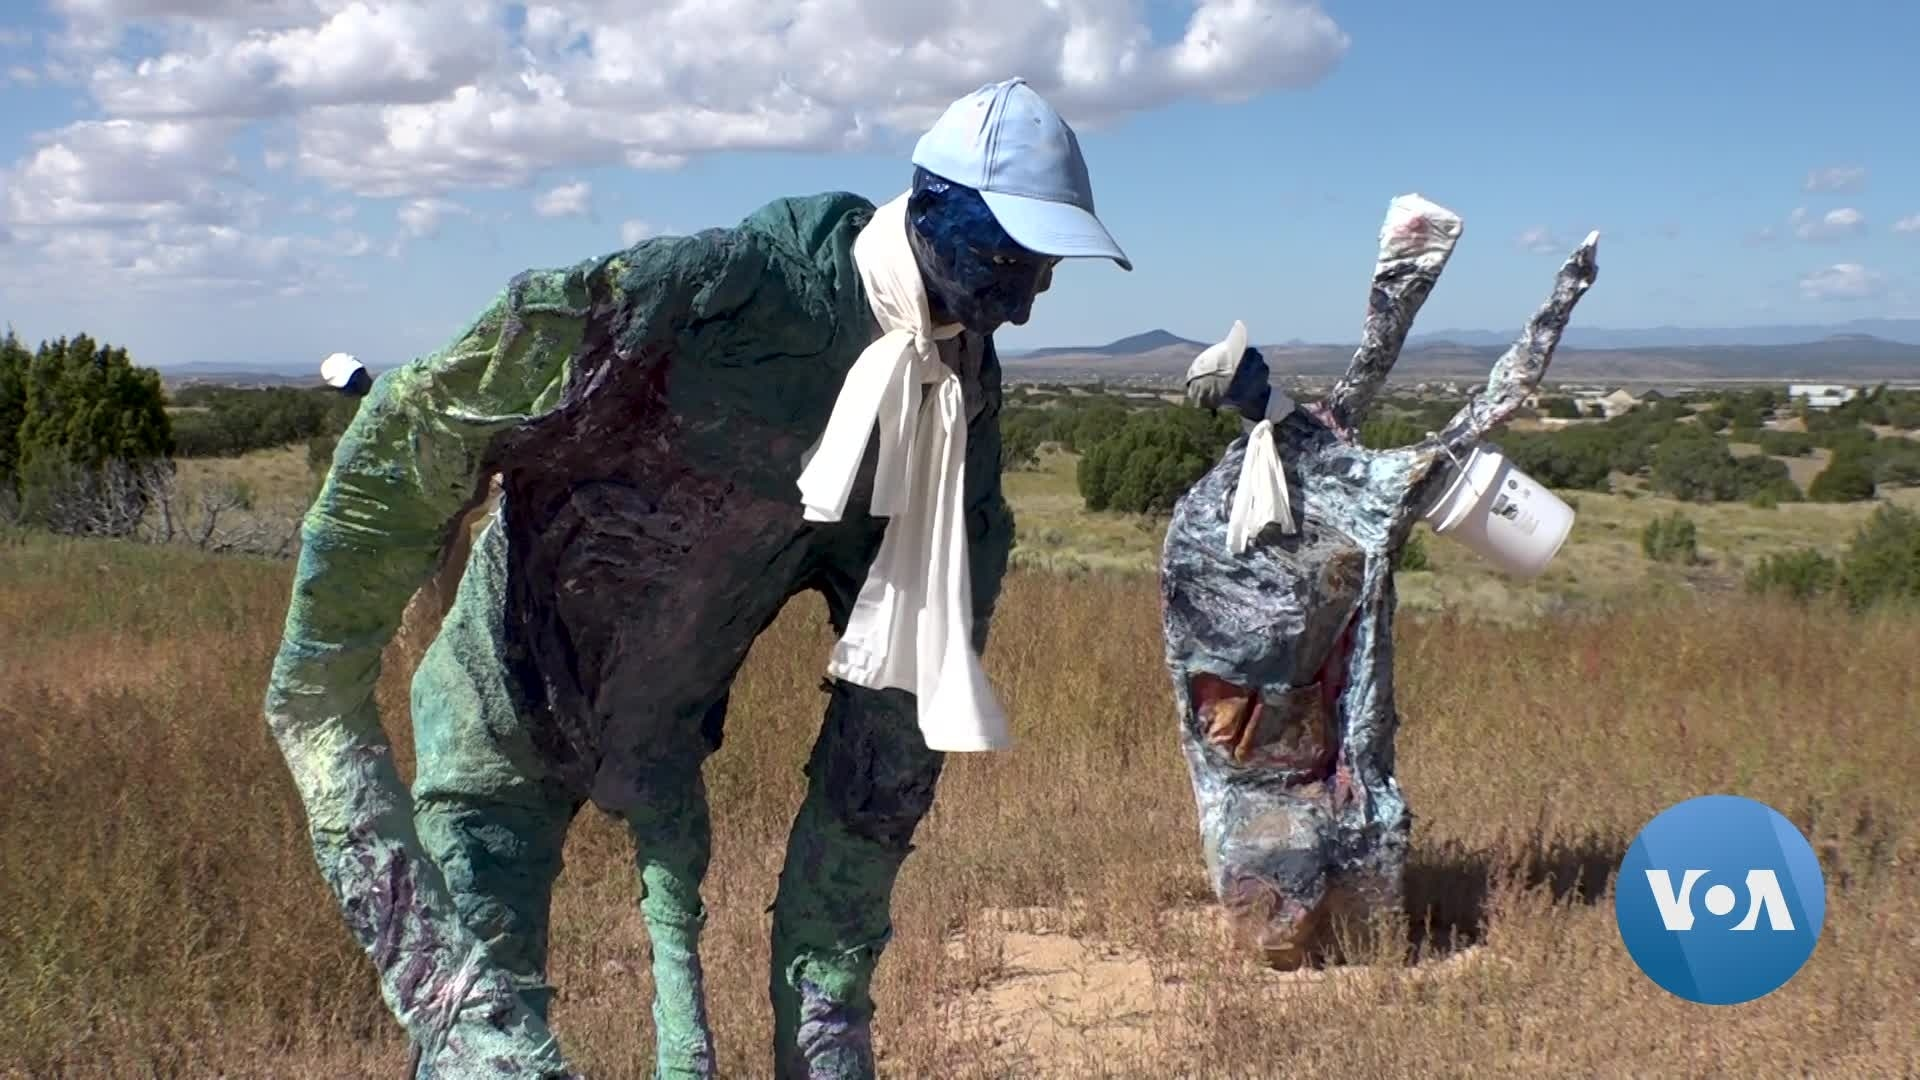 Artist Uses Sculptures to Examine Racial Violence